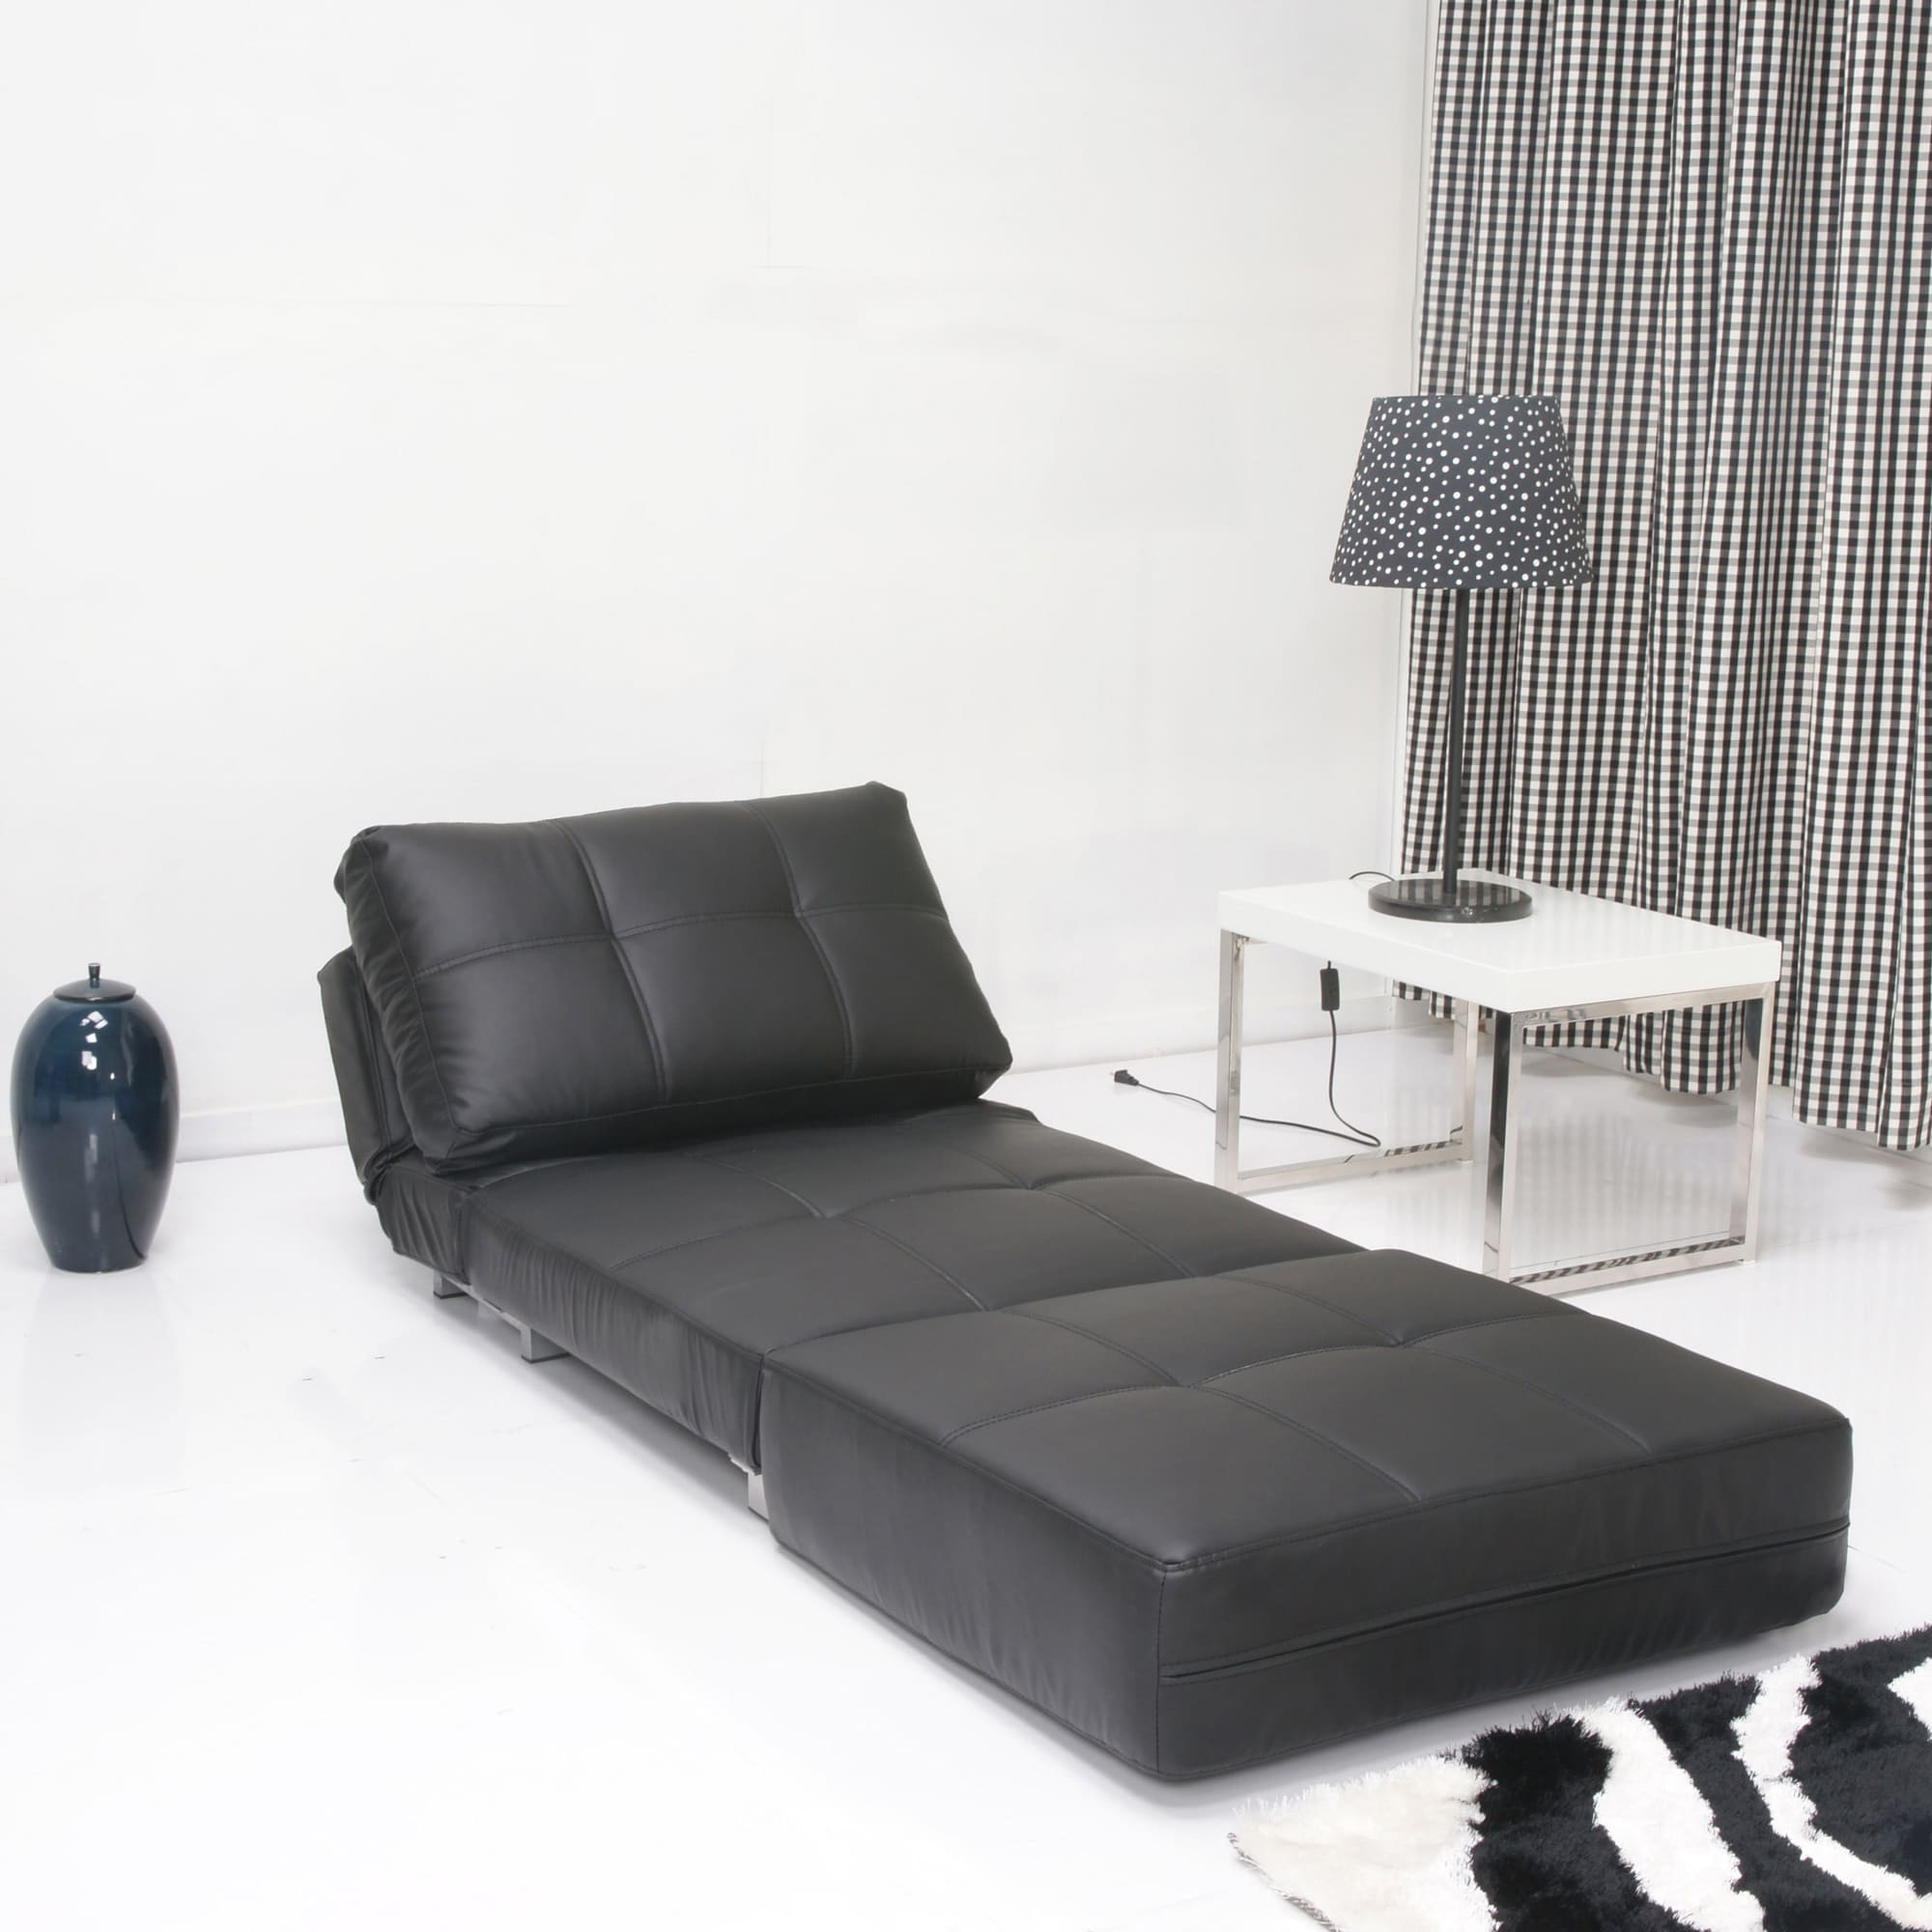 Marvelous New York Black Matte Convertible Chair Bed Pdpeps Interior Chair Design Pdpepsorg